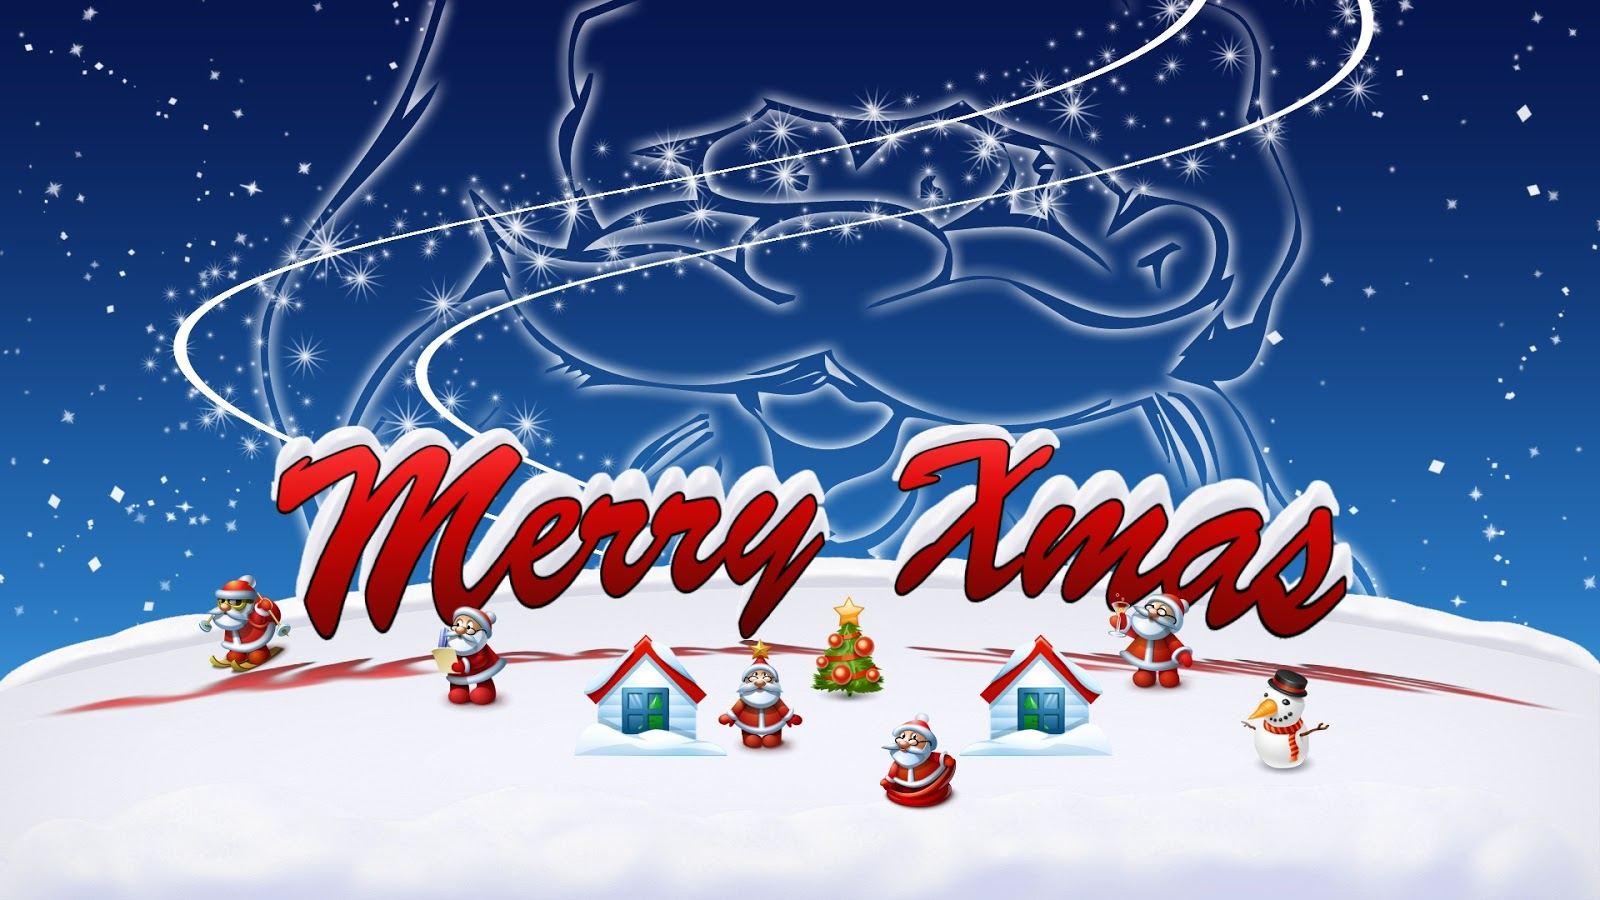 new christmas greetings hd wallpaper collection - 2013 - merry